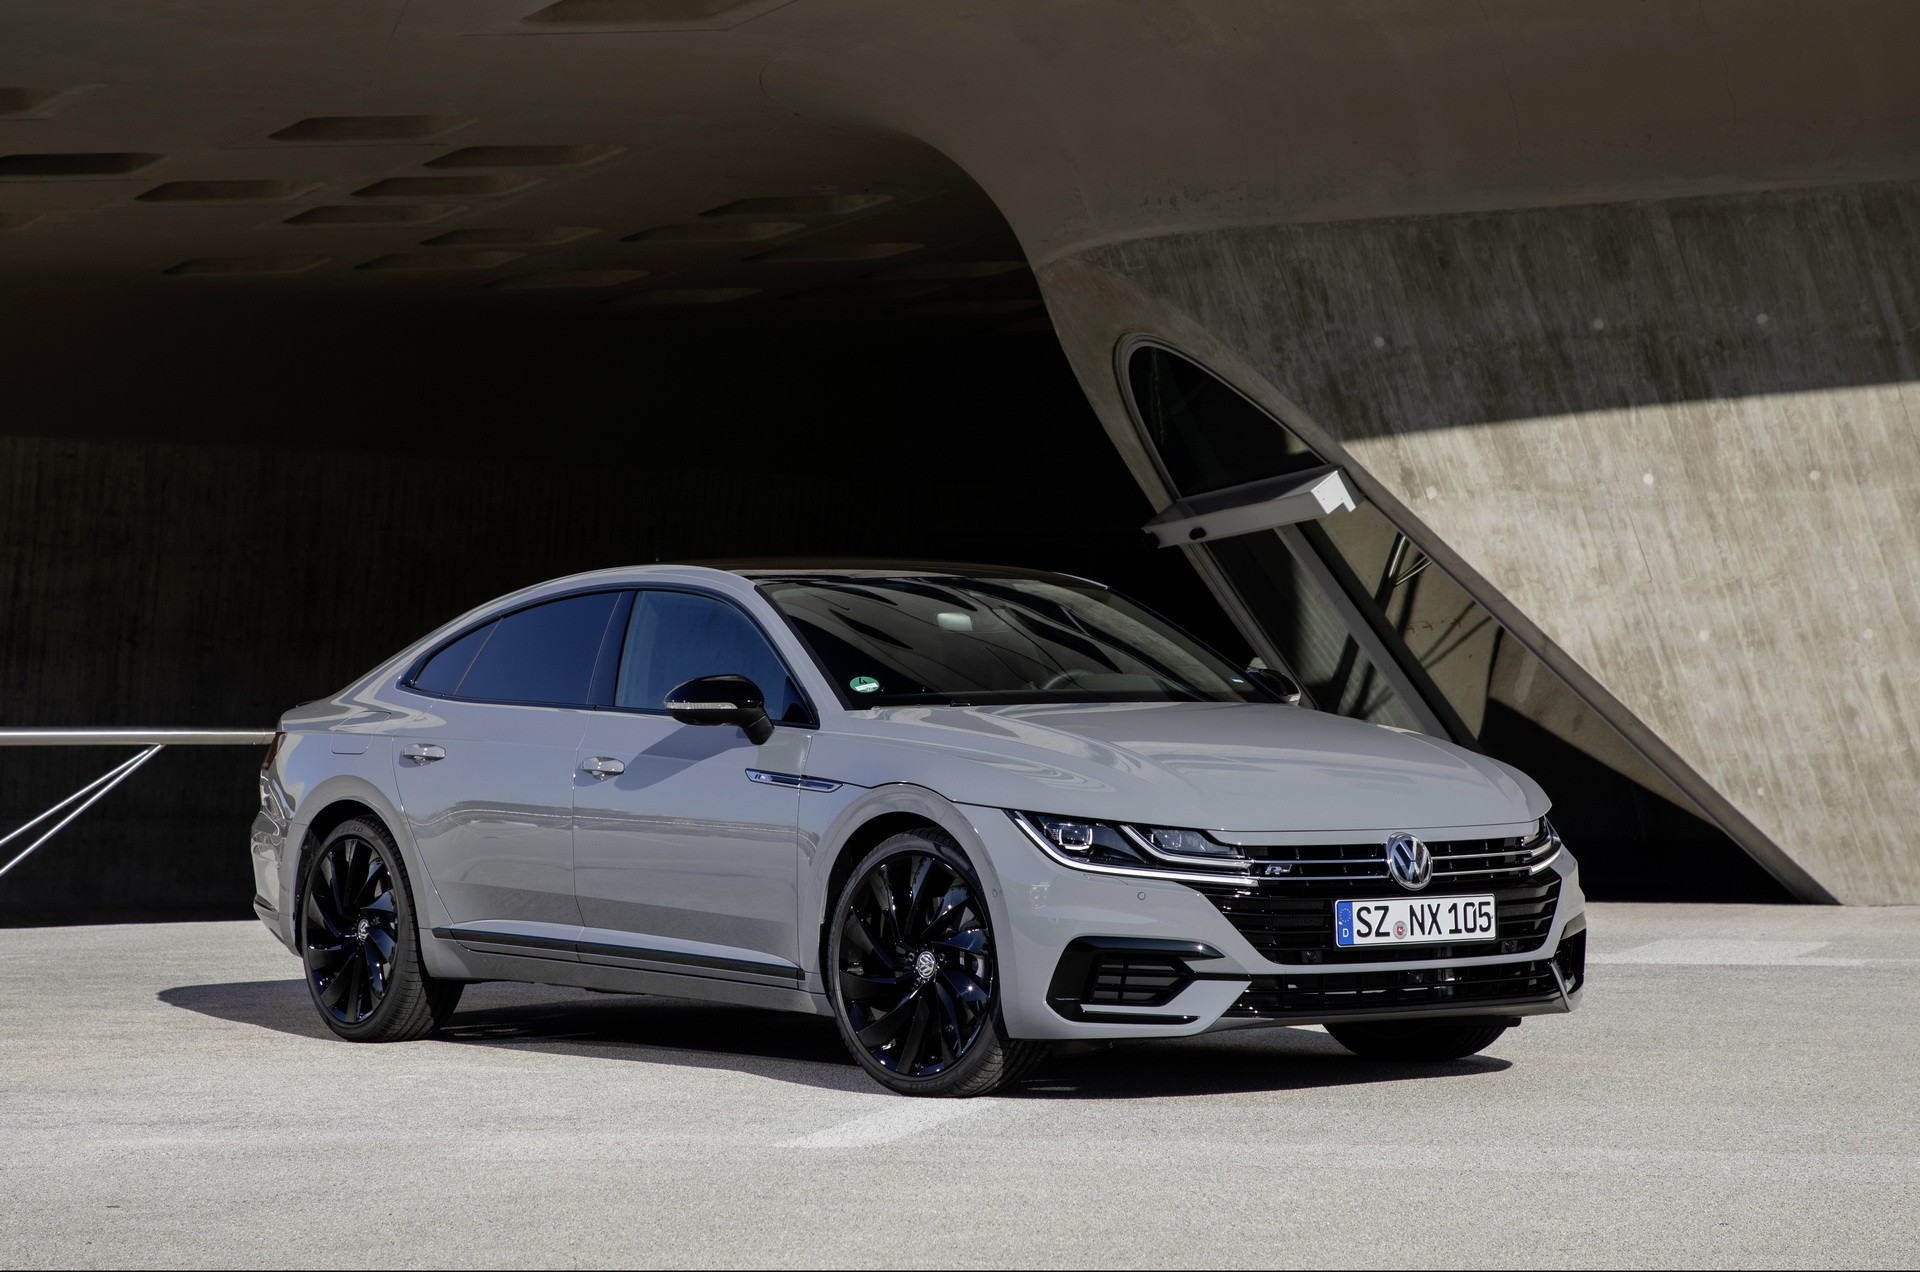 2020 volkswagen arteon r-line edition is limited to 250